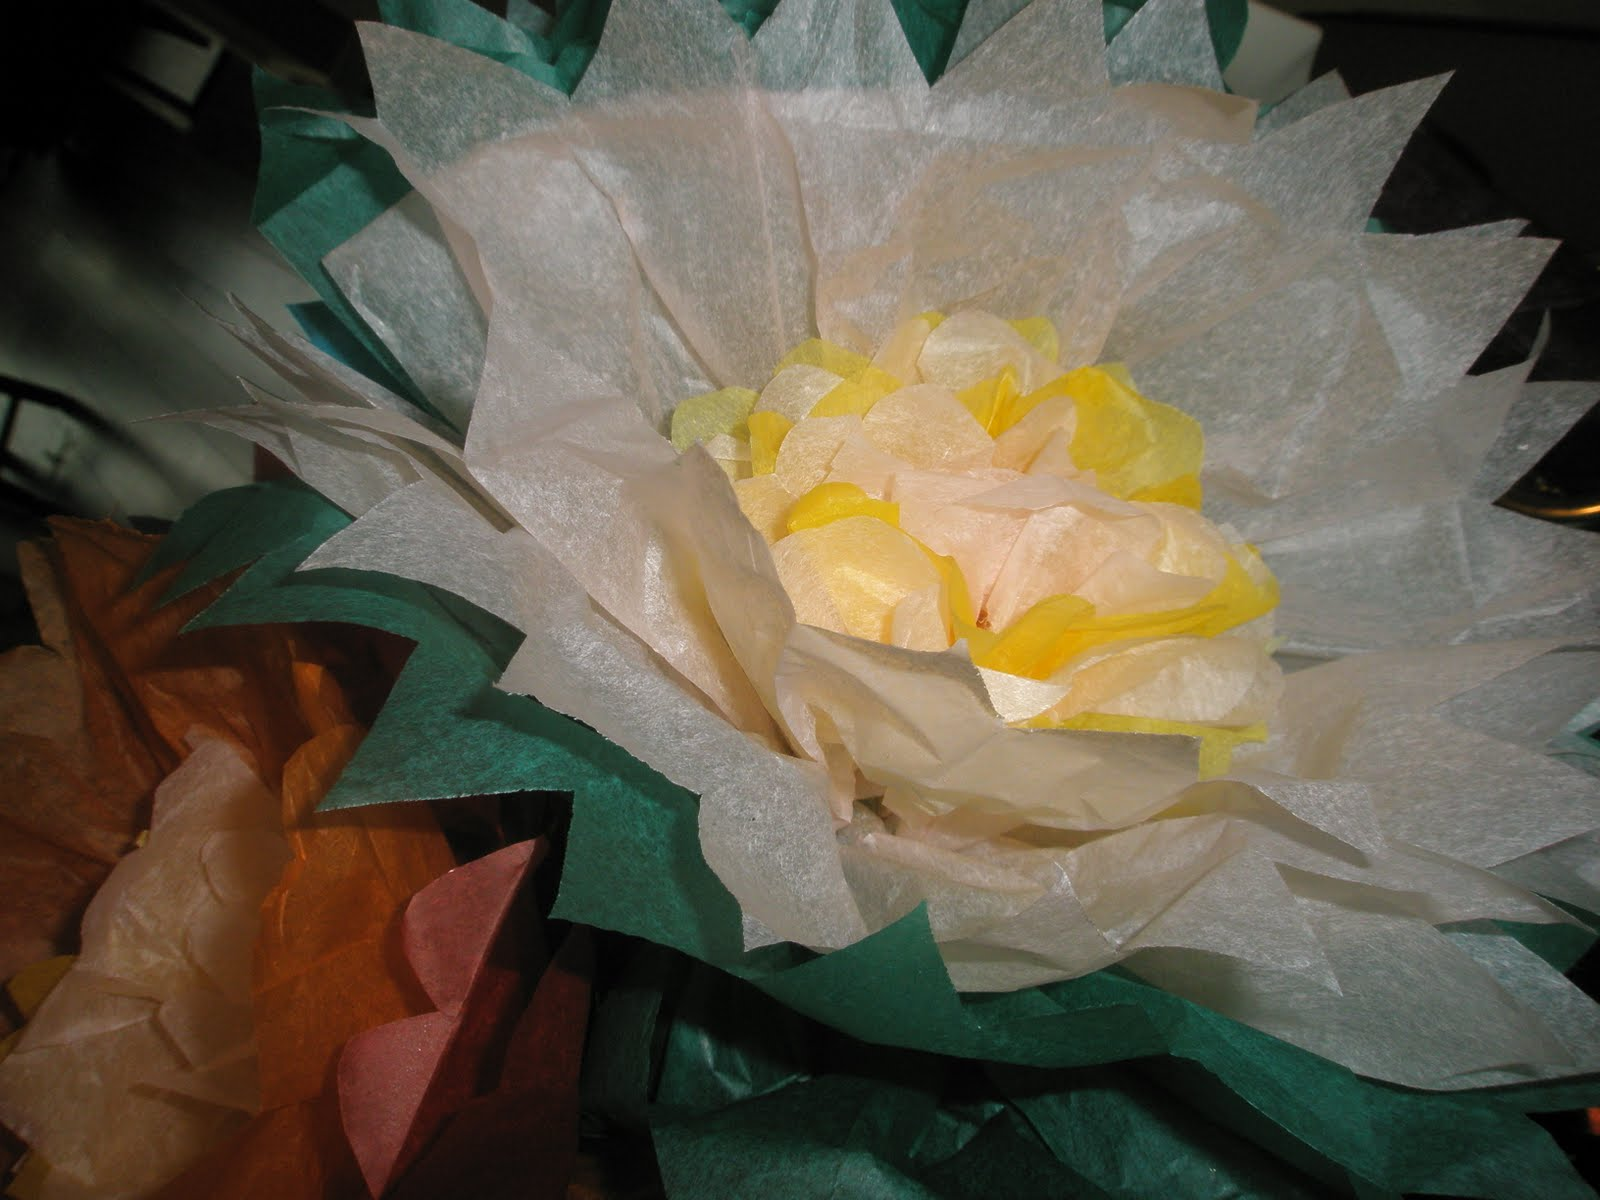 My paper playhouse tissue paper flowers tutorial and a giveaway wednesday august 3 2011 mightylinksfo